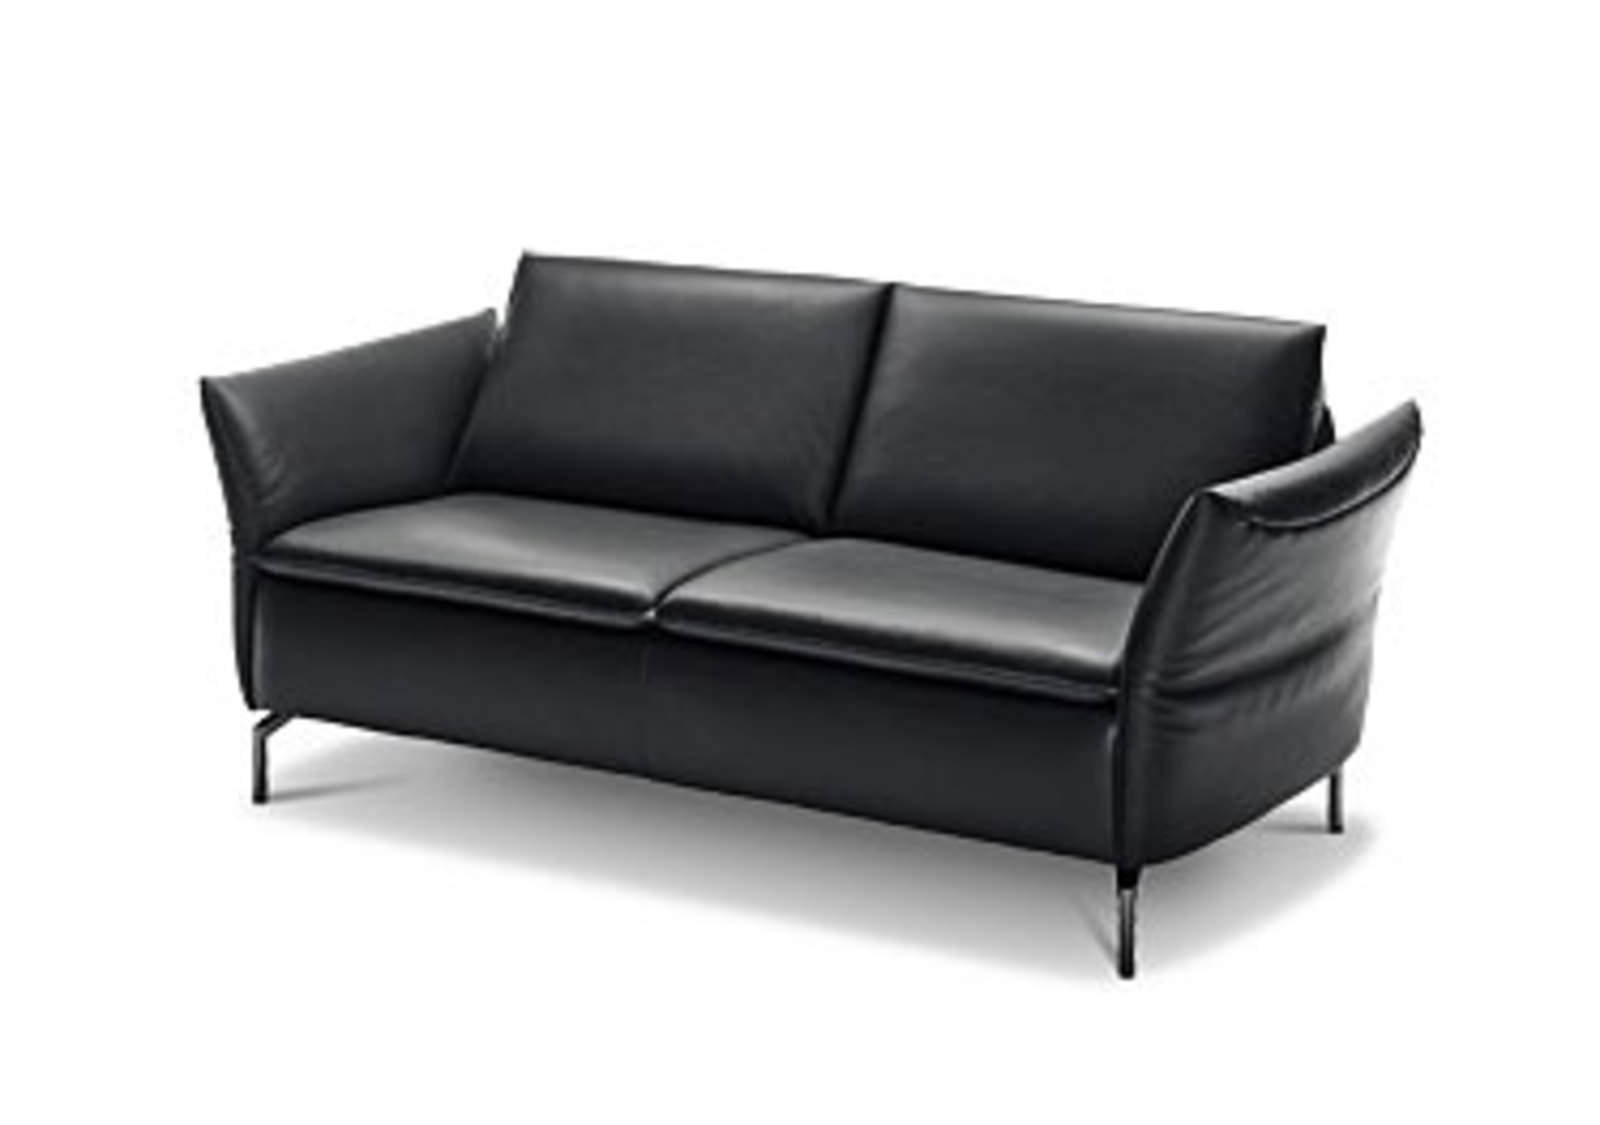 mondo sofa 2 sitzer online entdecken knuffmann ihr m belhaus. Black Bedroom Furniture Sets. Home Design Ideas